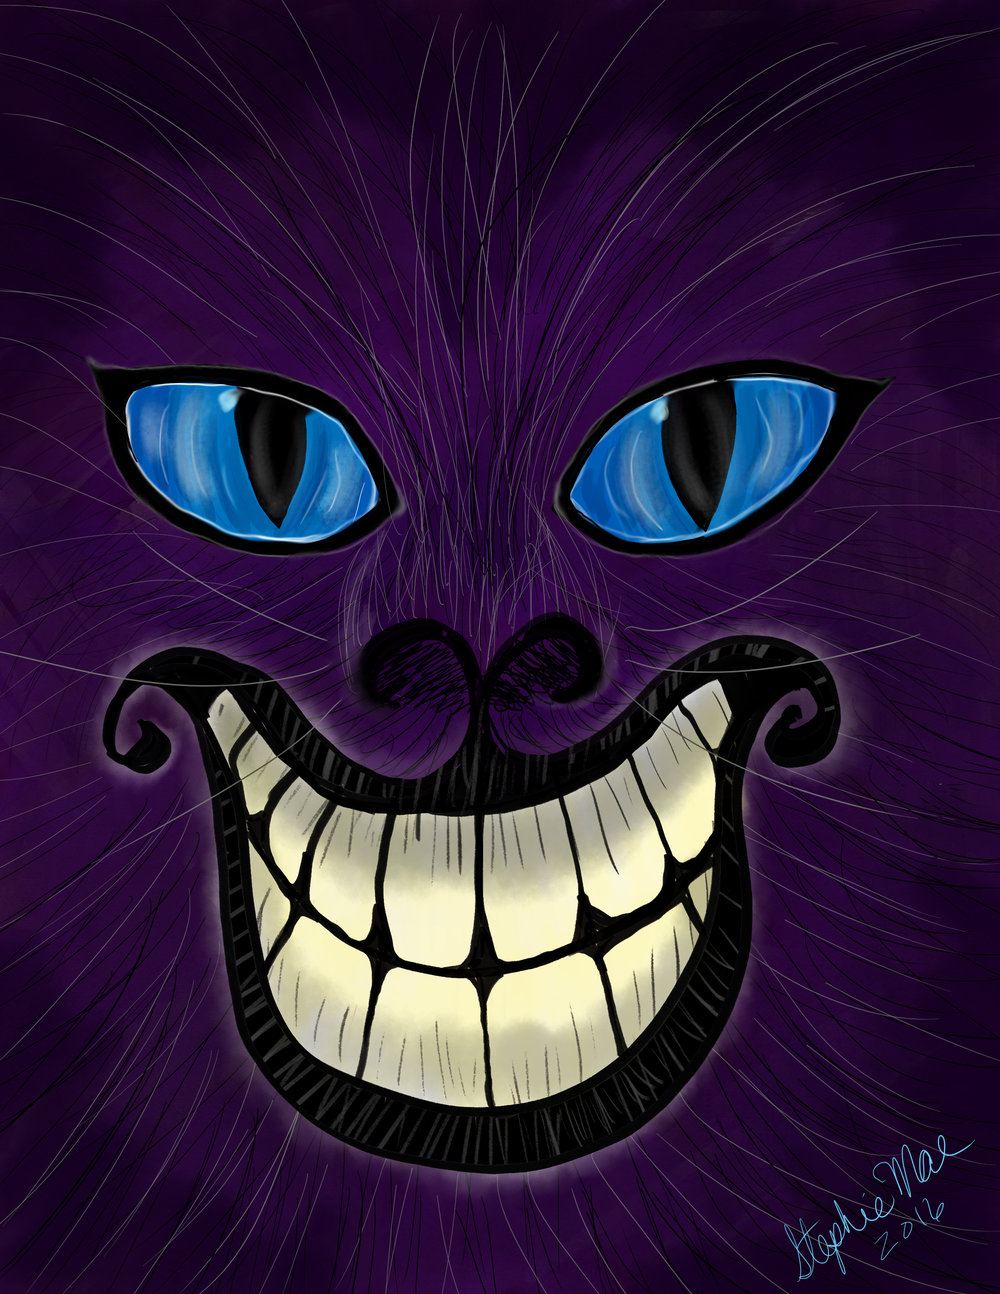 Cheshire Cat 8x10. Digital painting done in Adobe Photoshop. Stephie Mae 2016